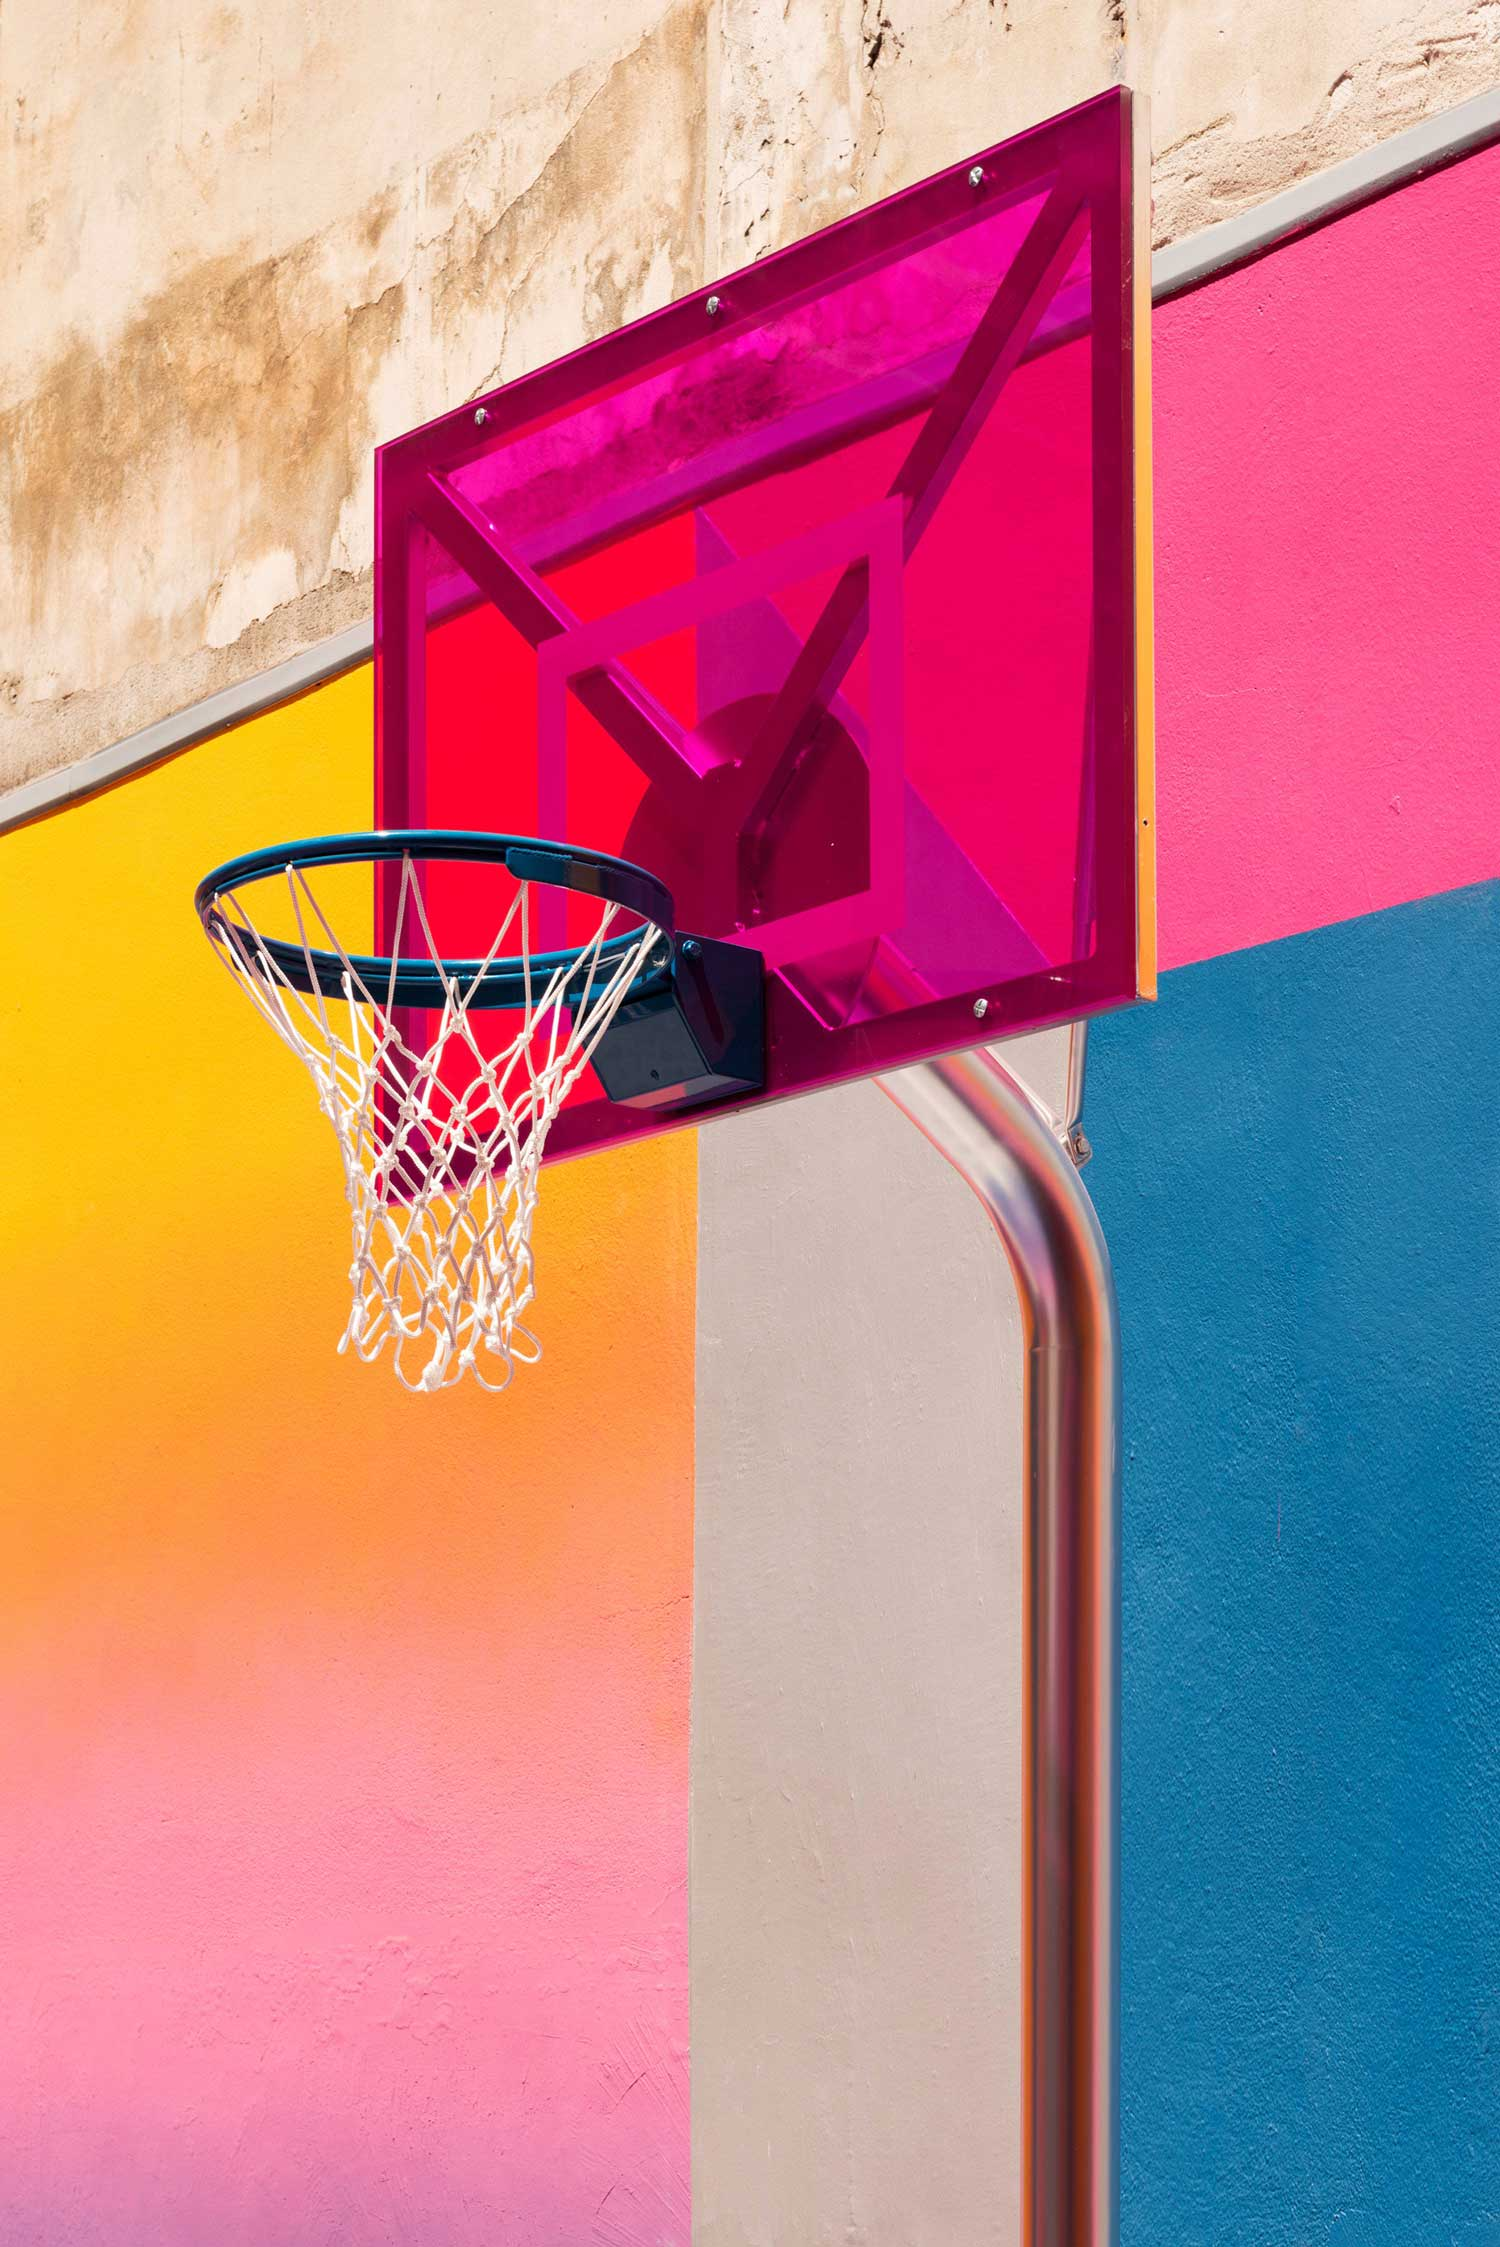 Technicolor Paris Duperré Basketball Court by Pigalle, Ill-Studio and Nike | Yellowtrace